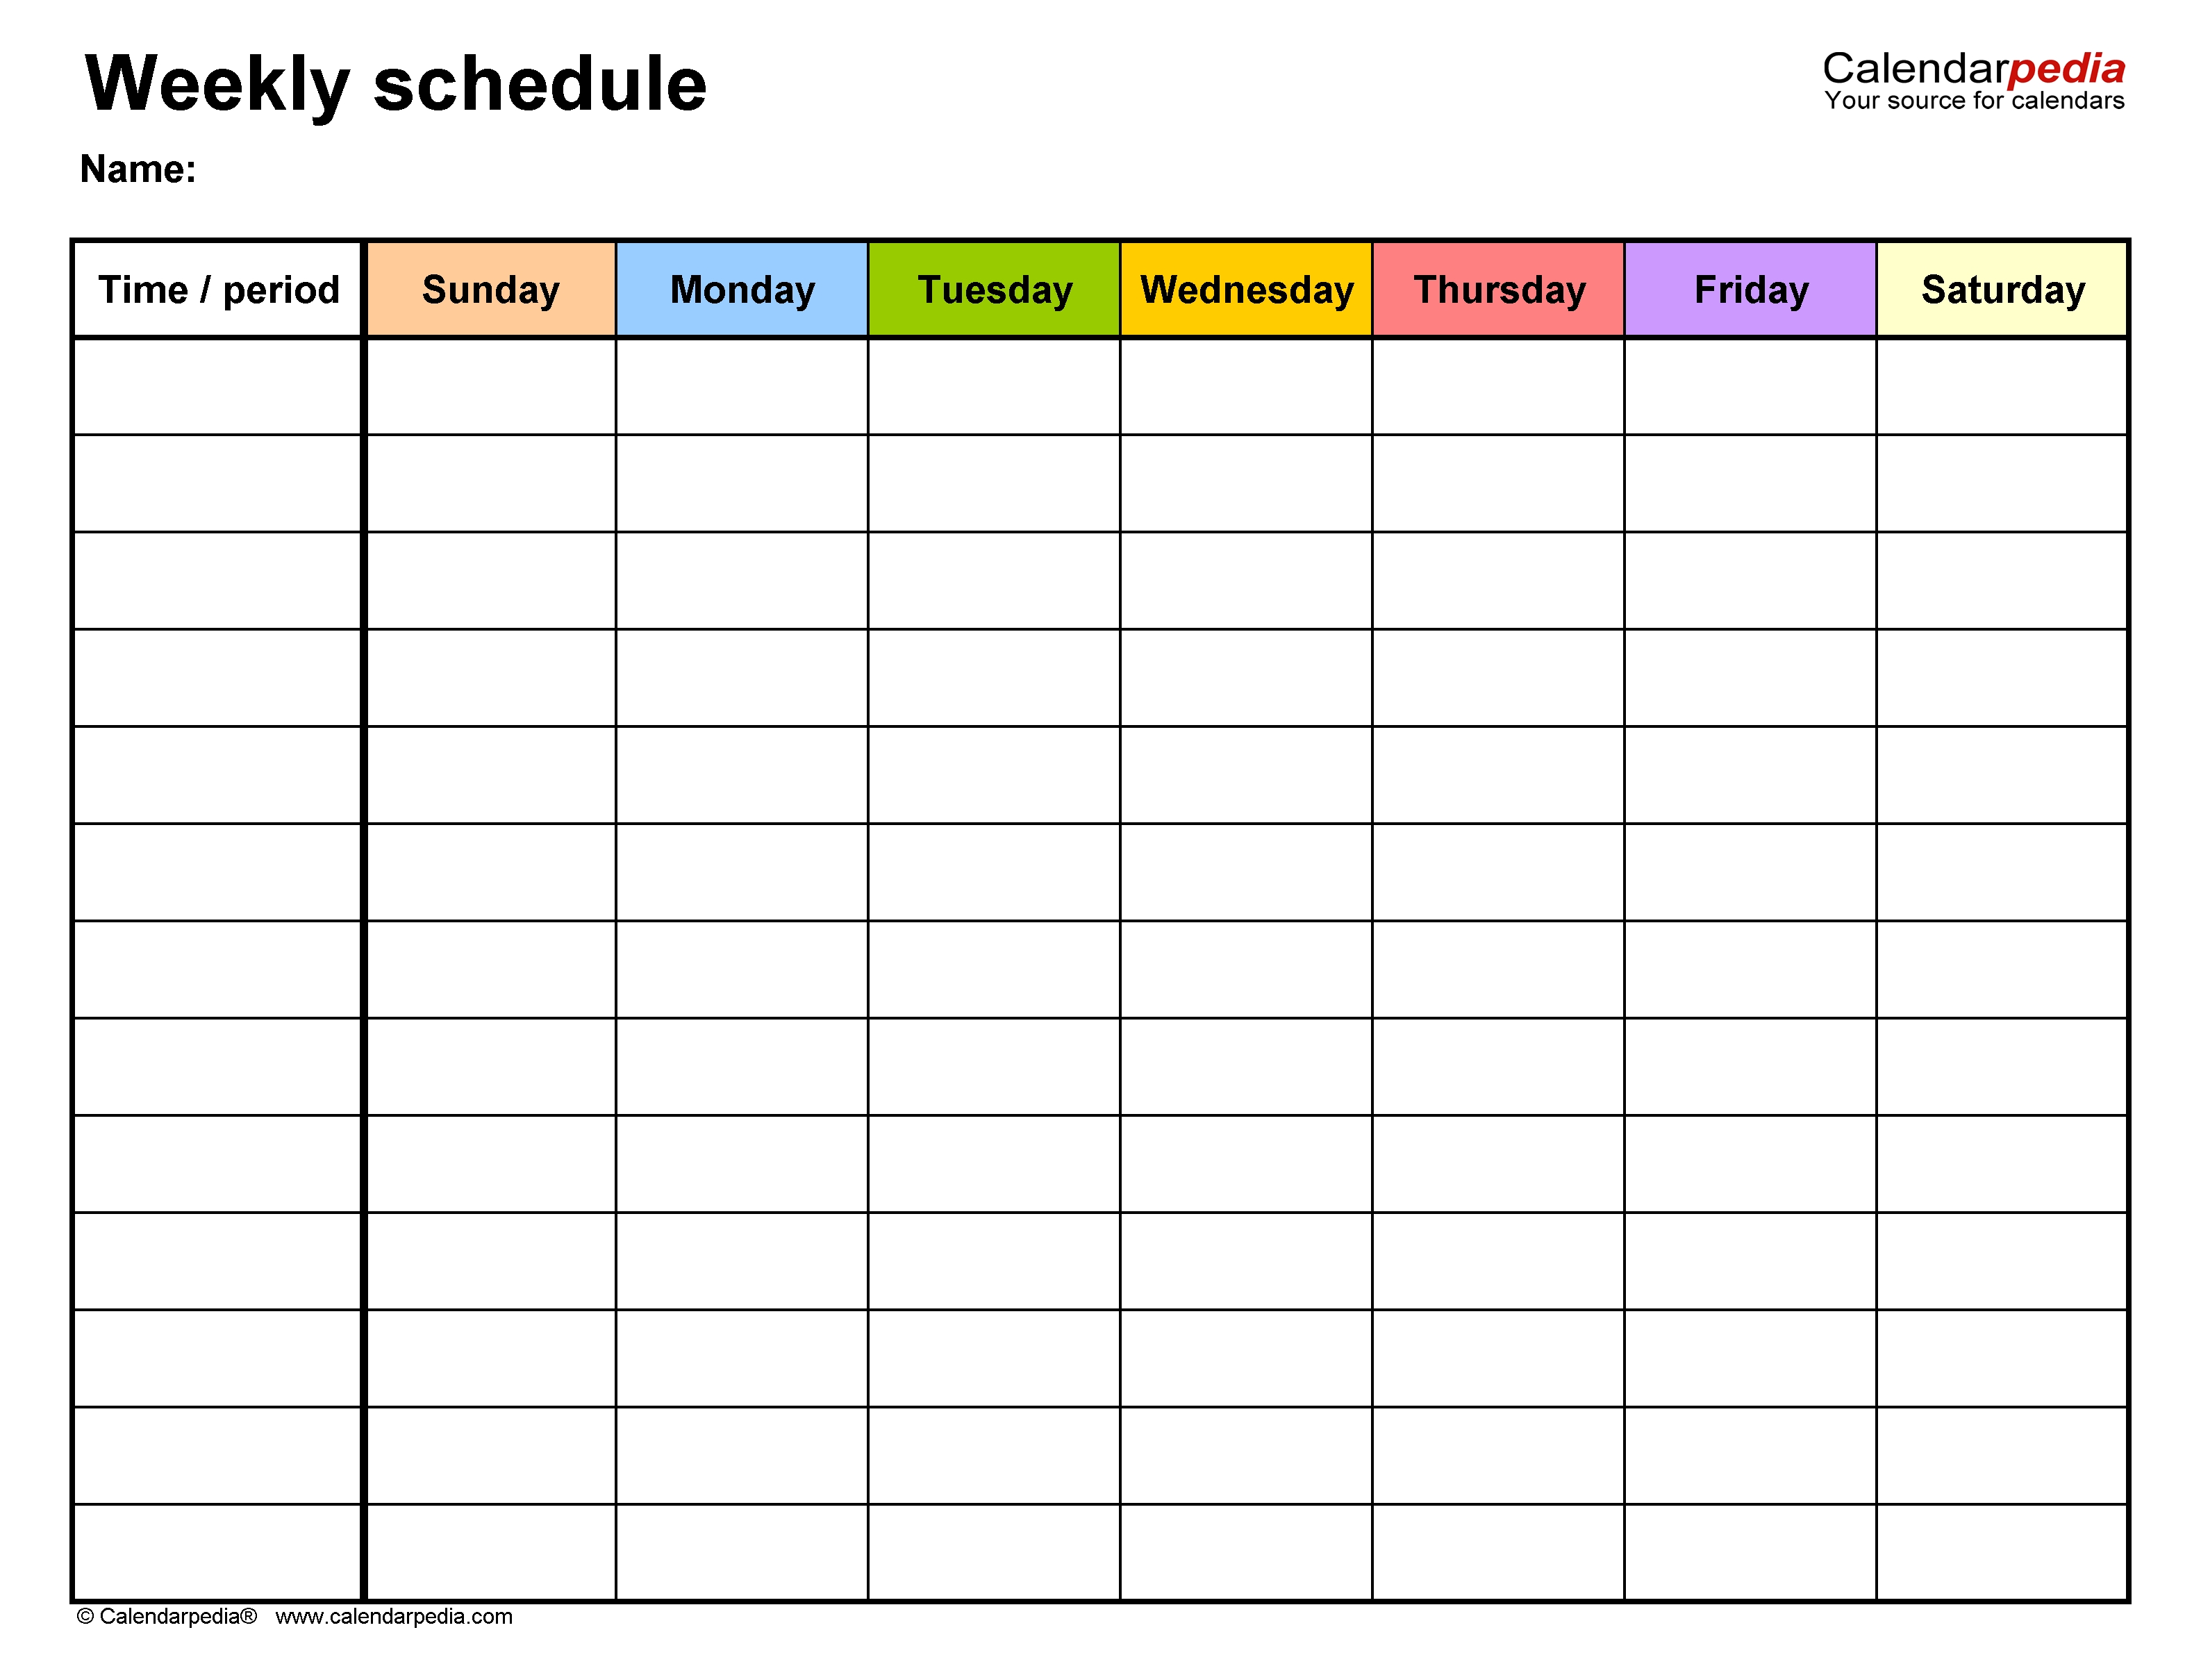 Free Weekly Schedule Templates For Word - 18 Templates Free Calendar Weekly Template